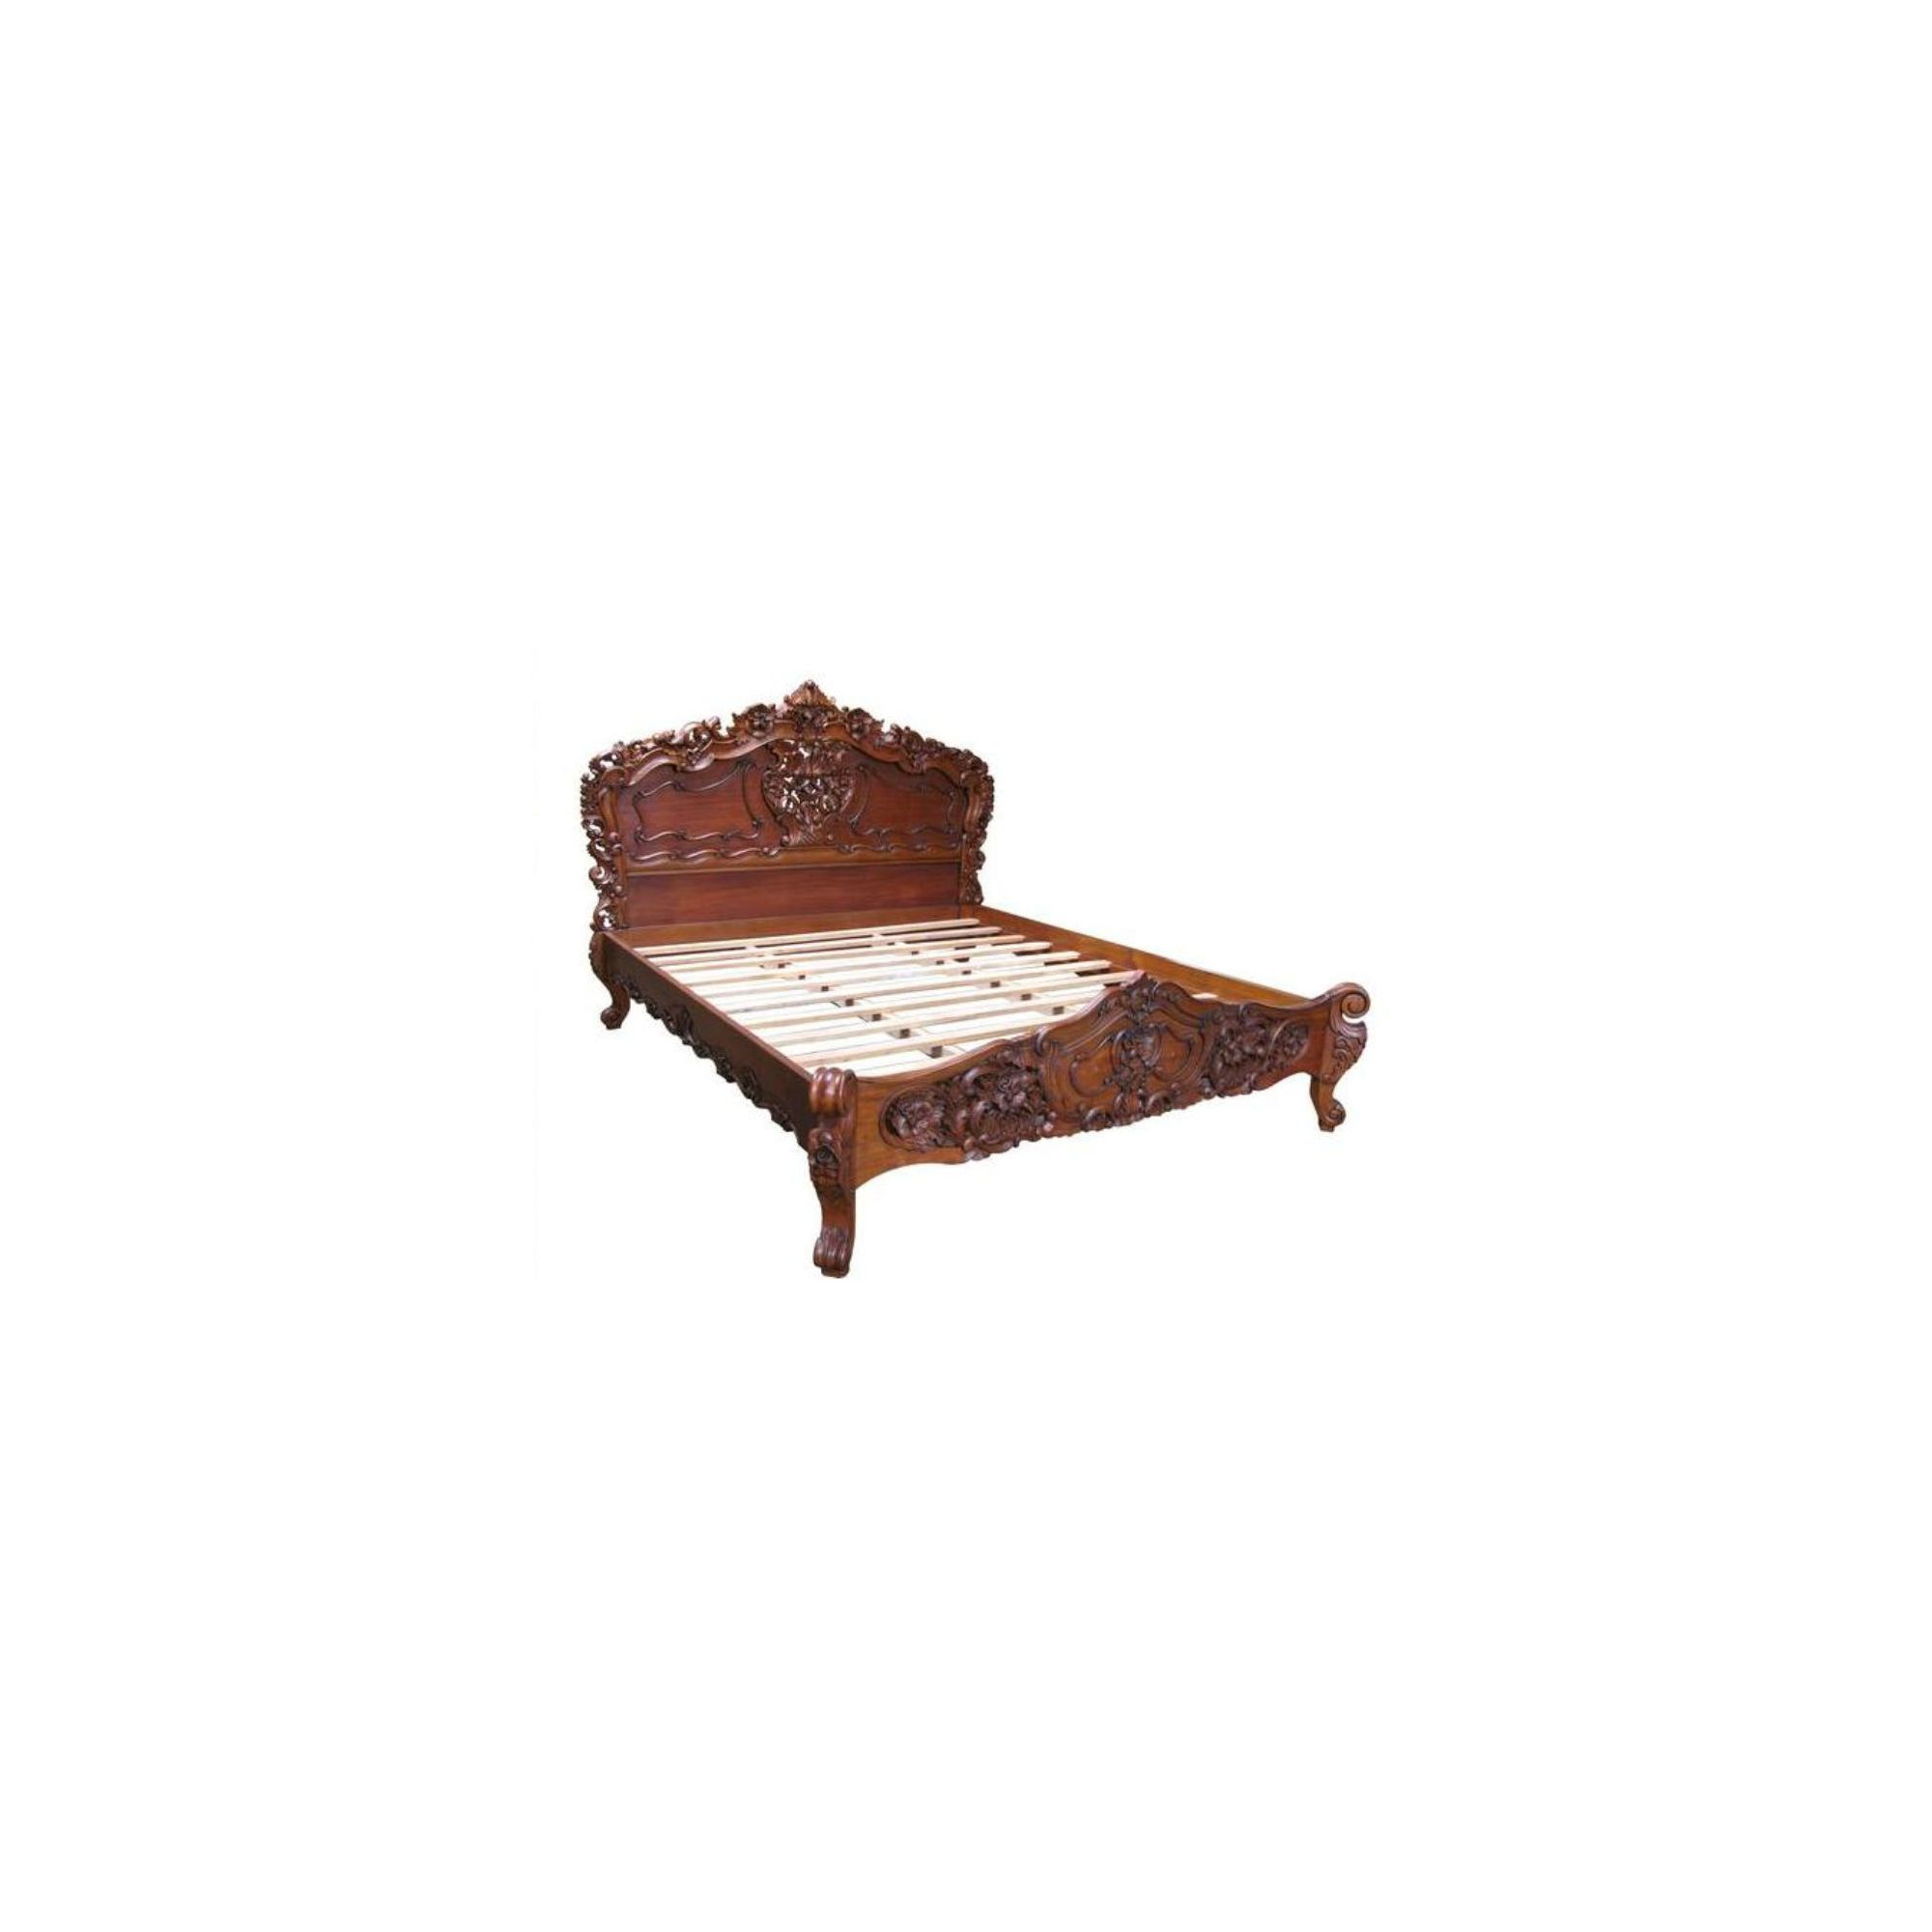 Lock stock and barrel Mahogany Carved Rococo Bed in Mahogany - Wax Polish - Double at Tesco Direct